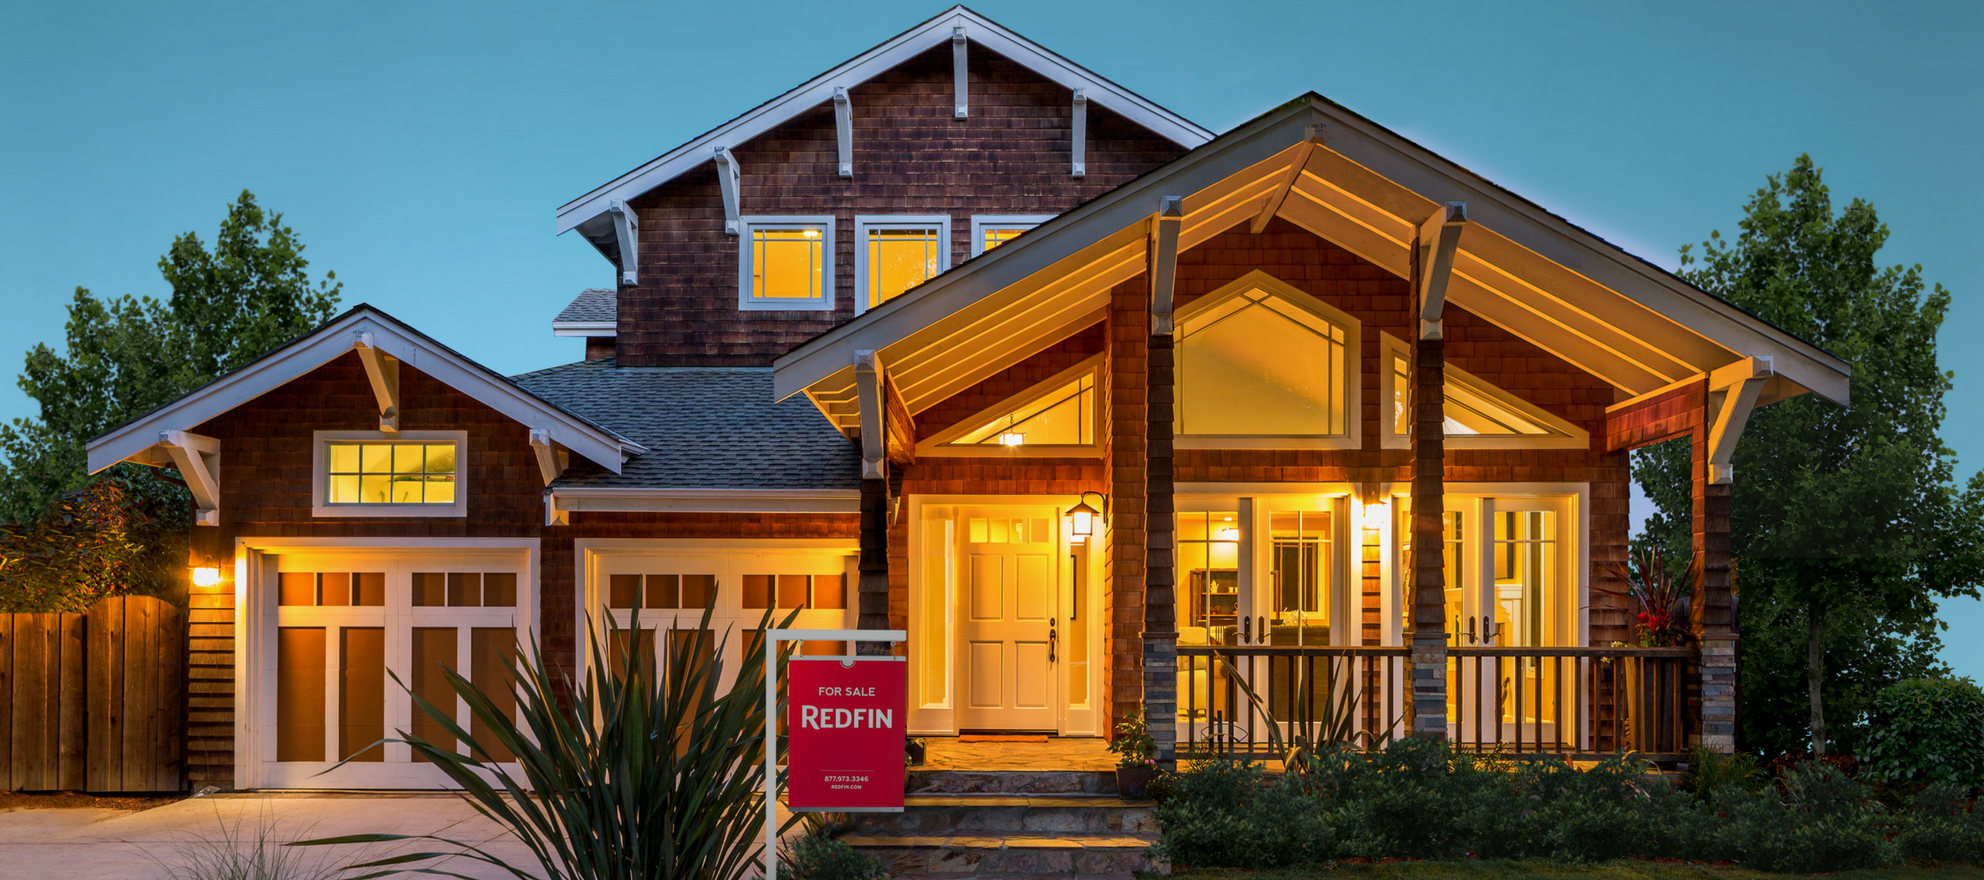 Home price appreciation is slowing around the country